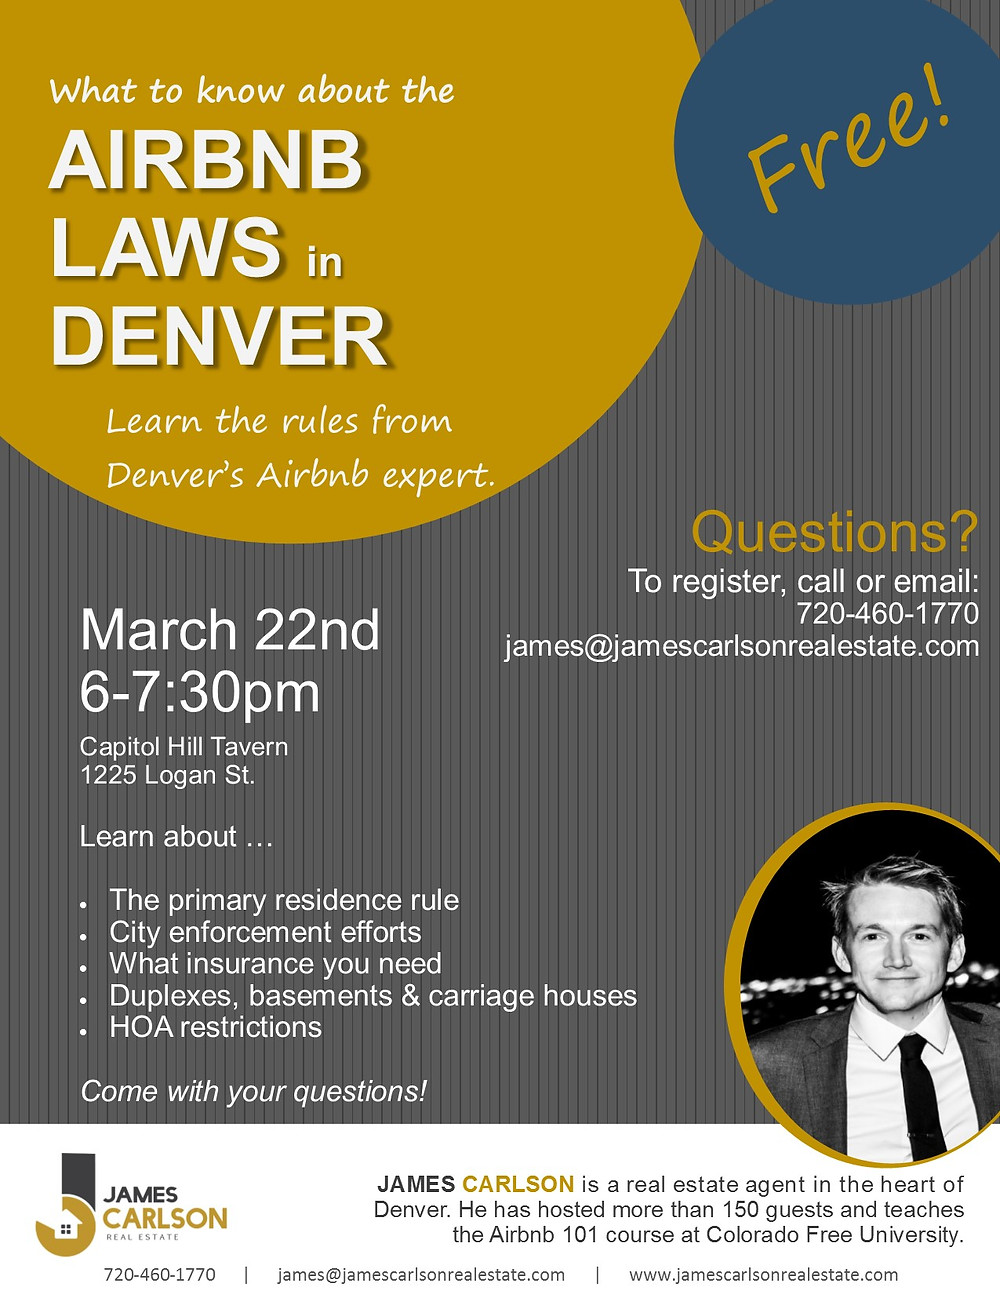 Airbnb laws in Denver: Learn the rules from Denver's Airbnb expert